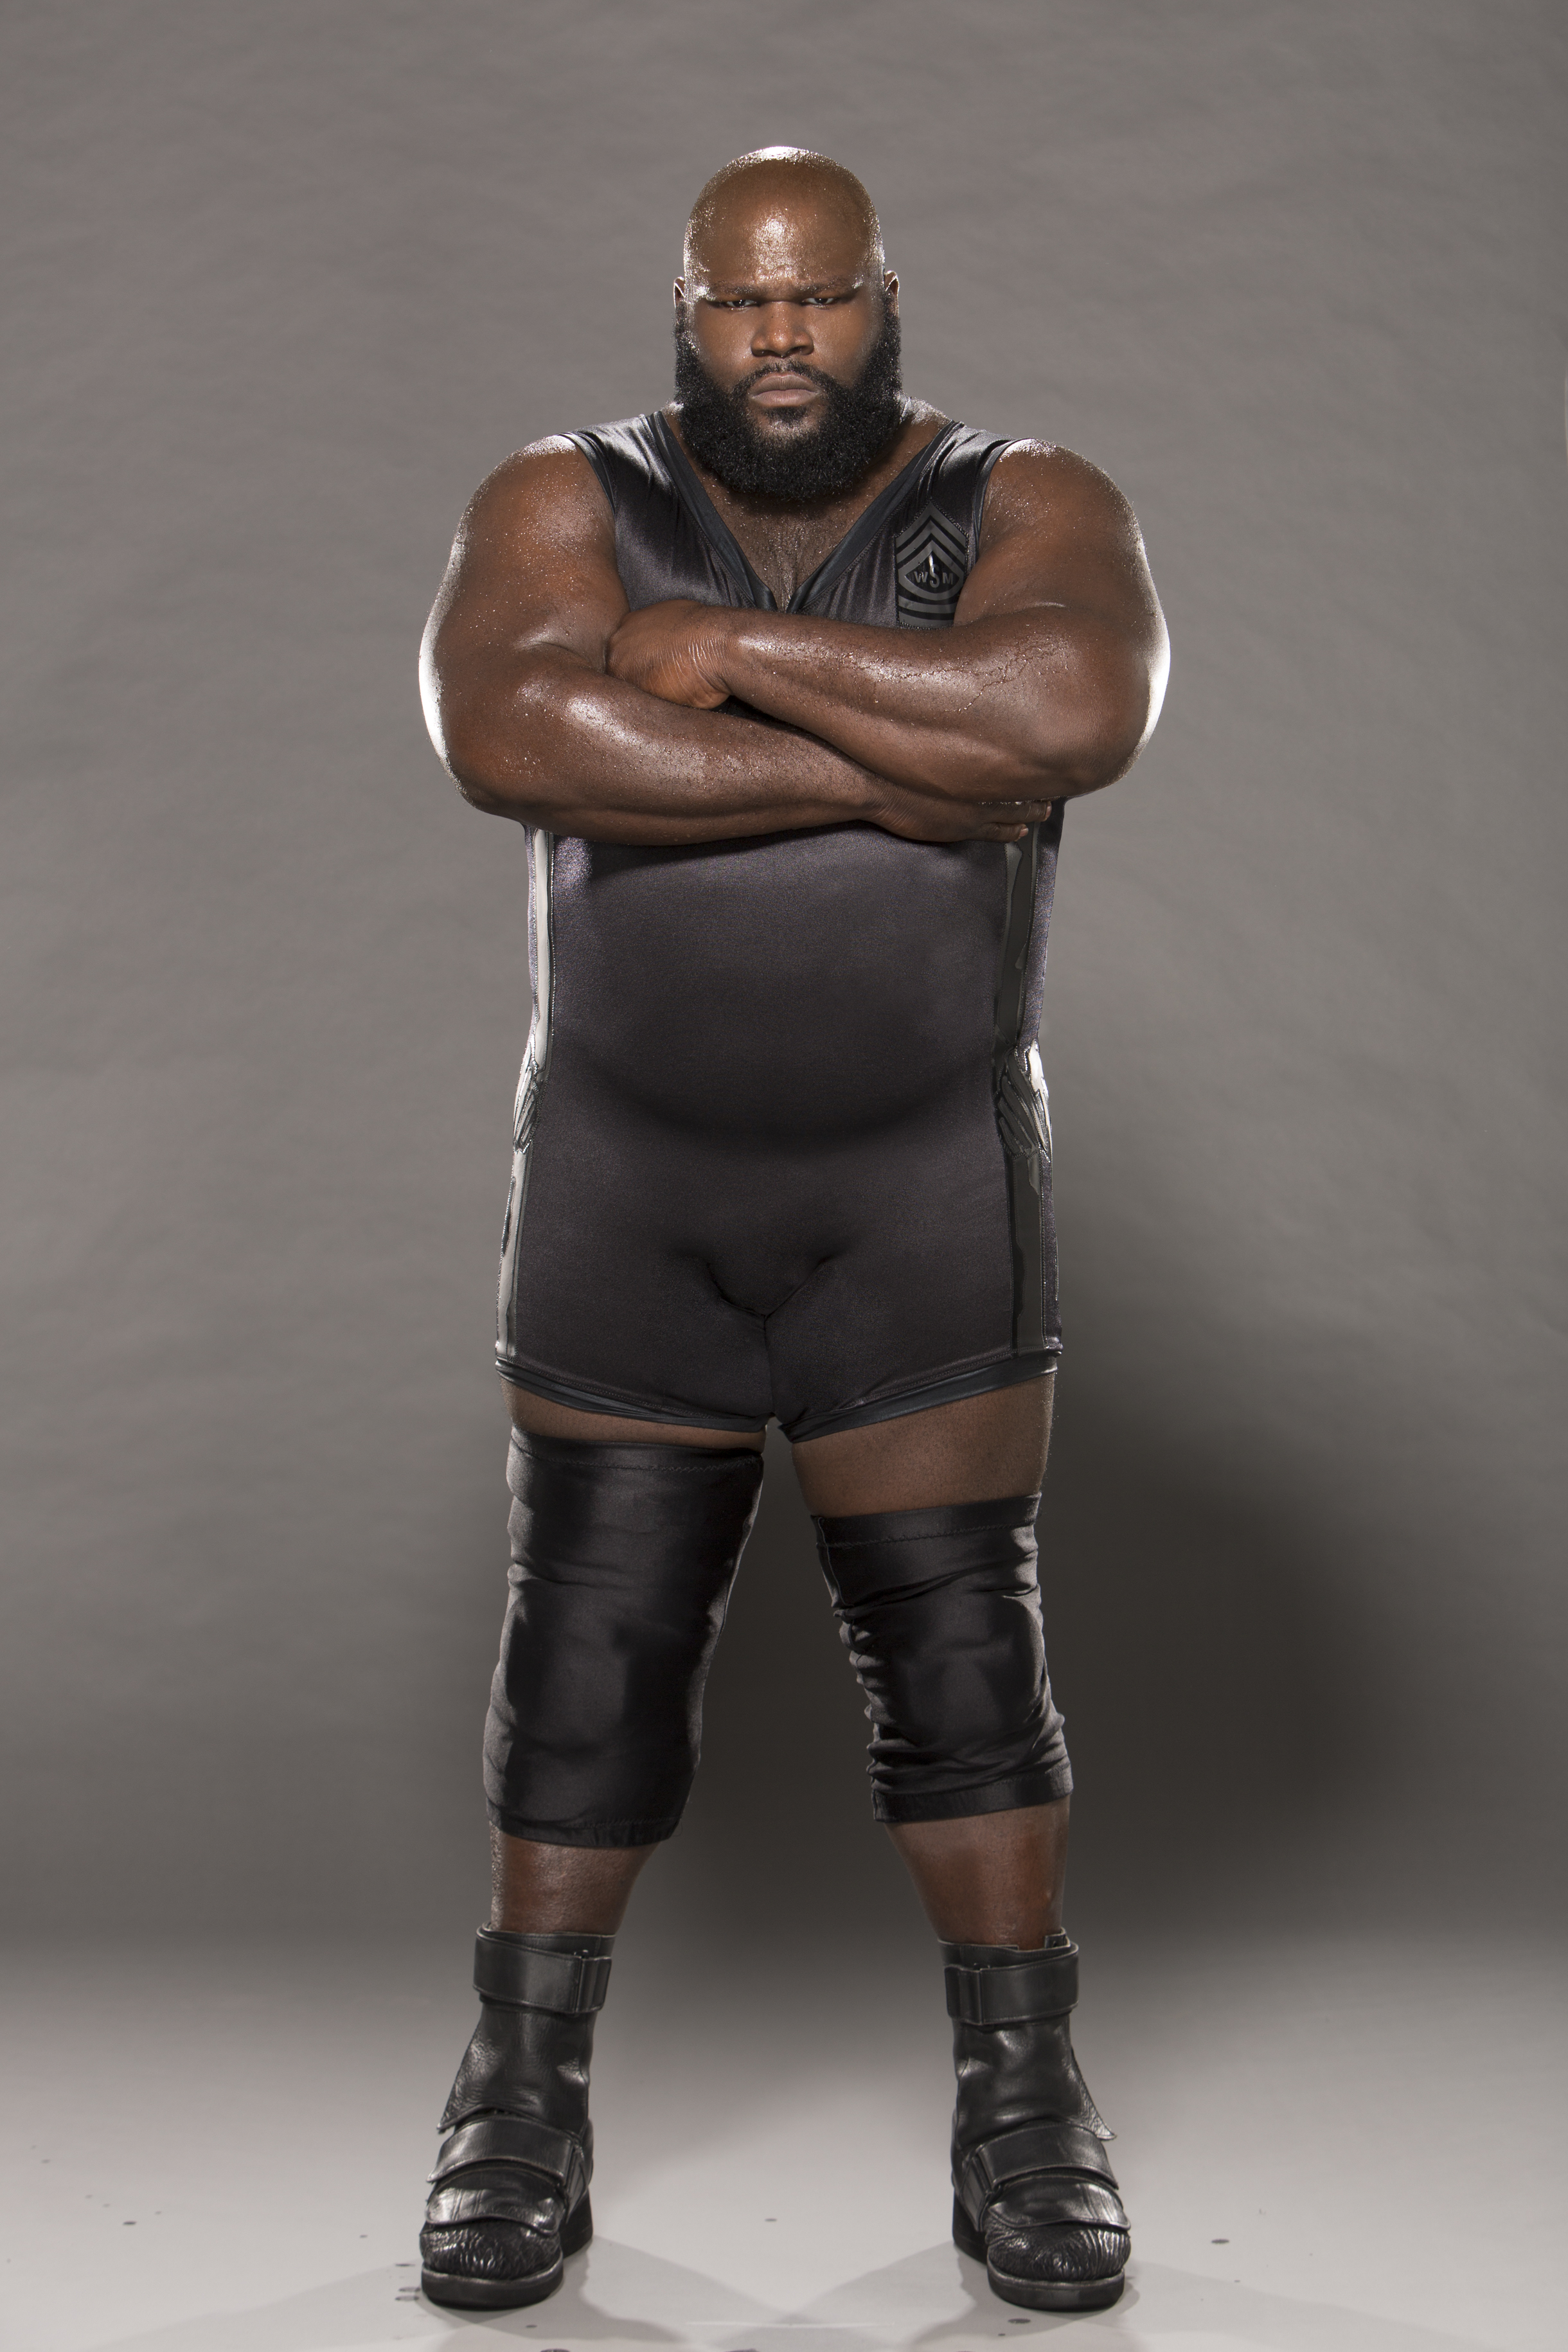 Mark Henry on His Legacy, NOD In 2015, State of WWE, The Streak ...